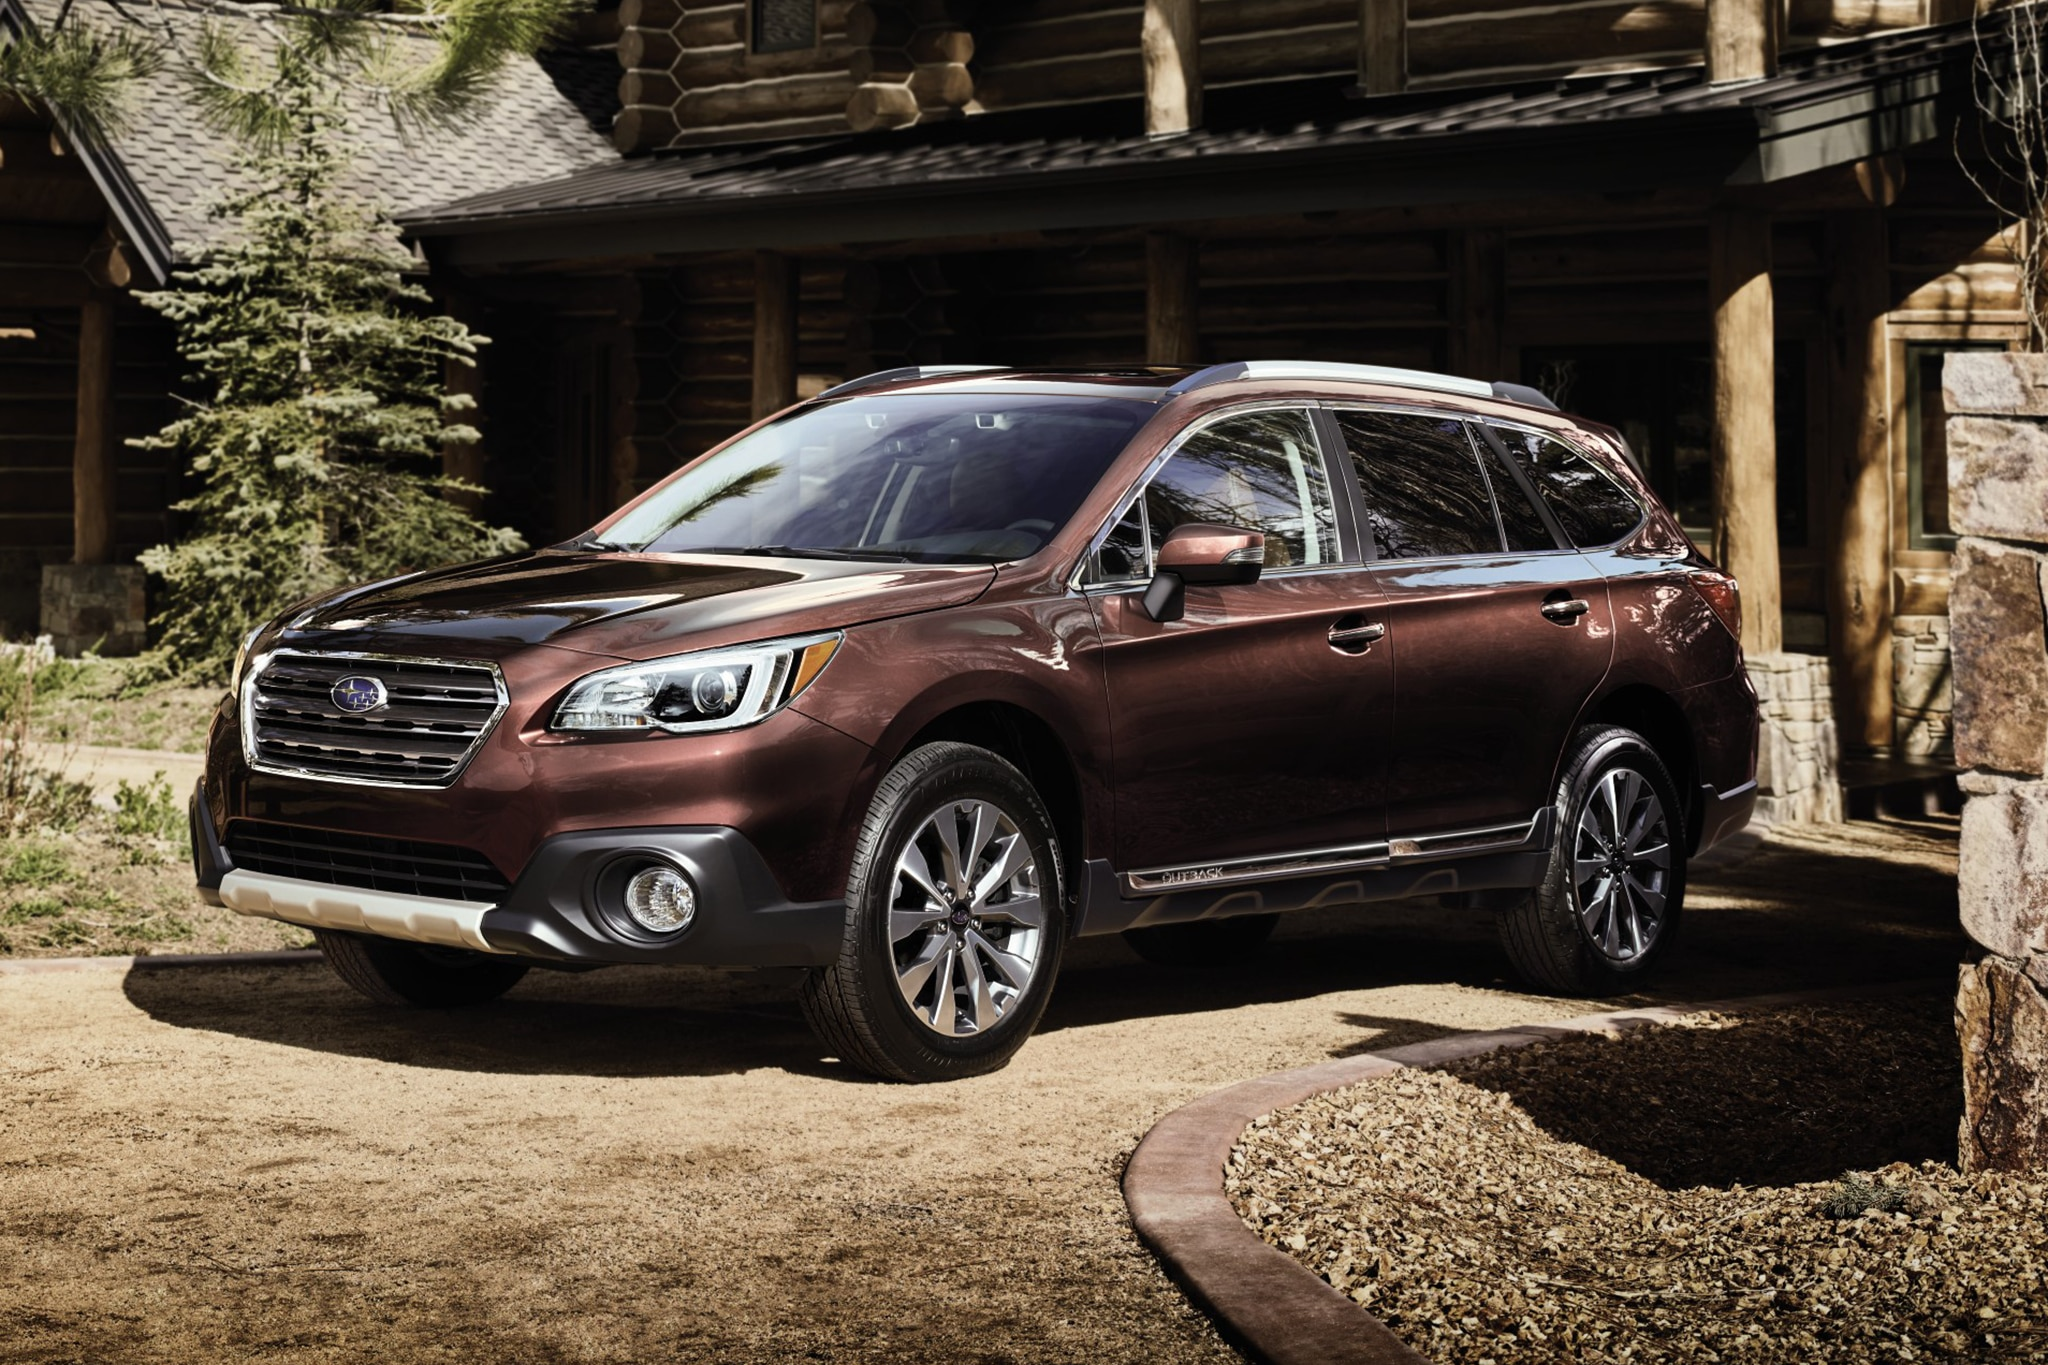 2017 Subaru Outback Touring front three quarter 02 2017 subaru legacy and outback pricing released automobile magazine 2000 subaru outback wiring diagram at reclaimingppi.co